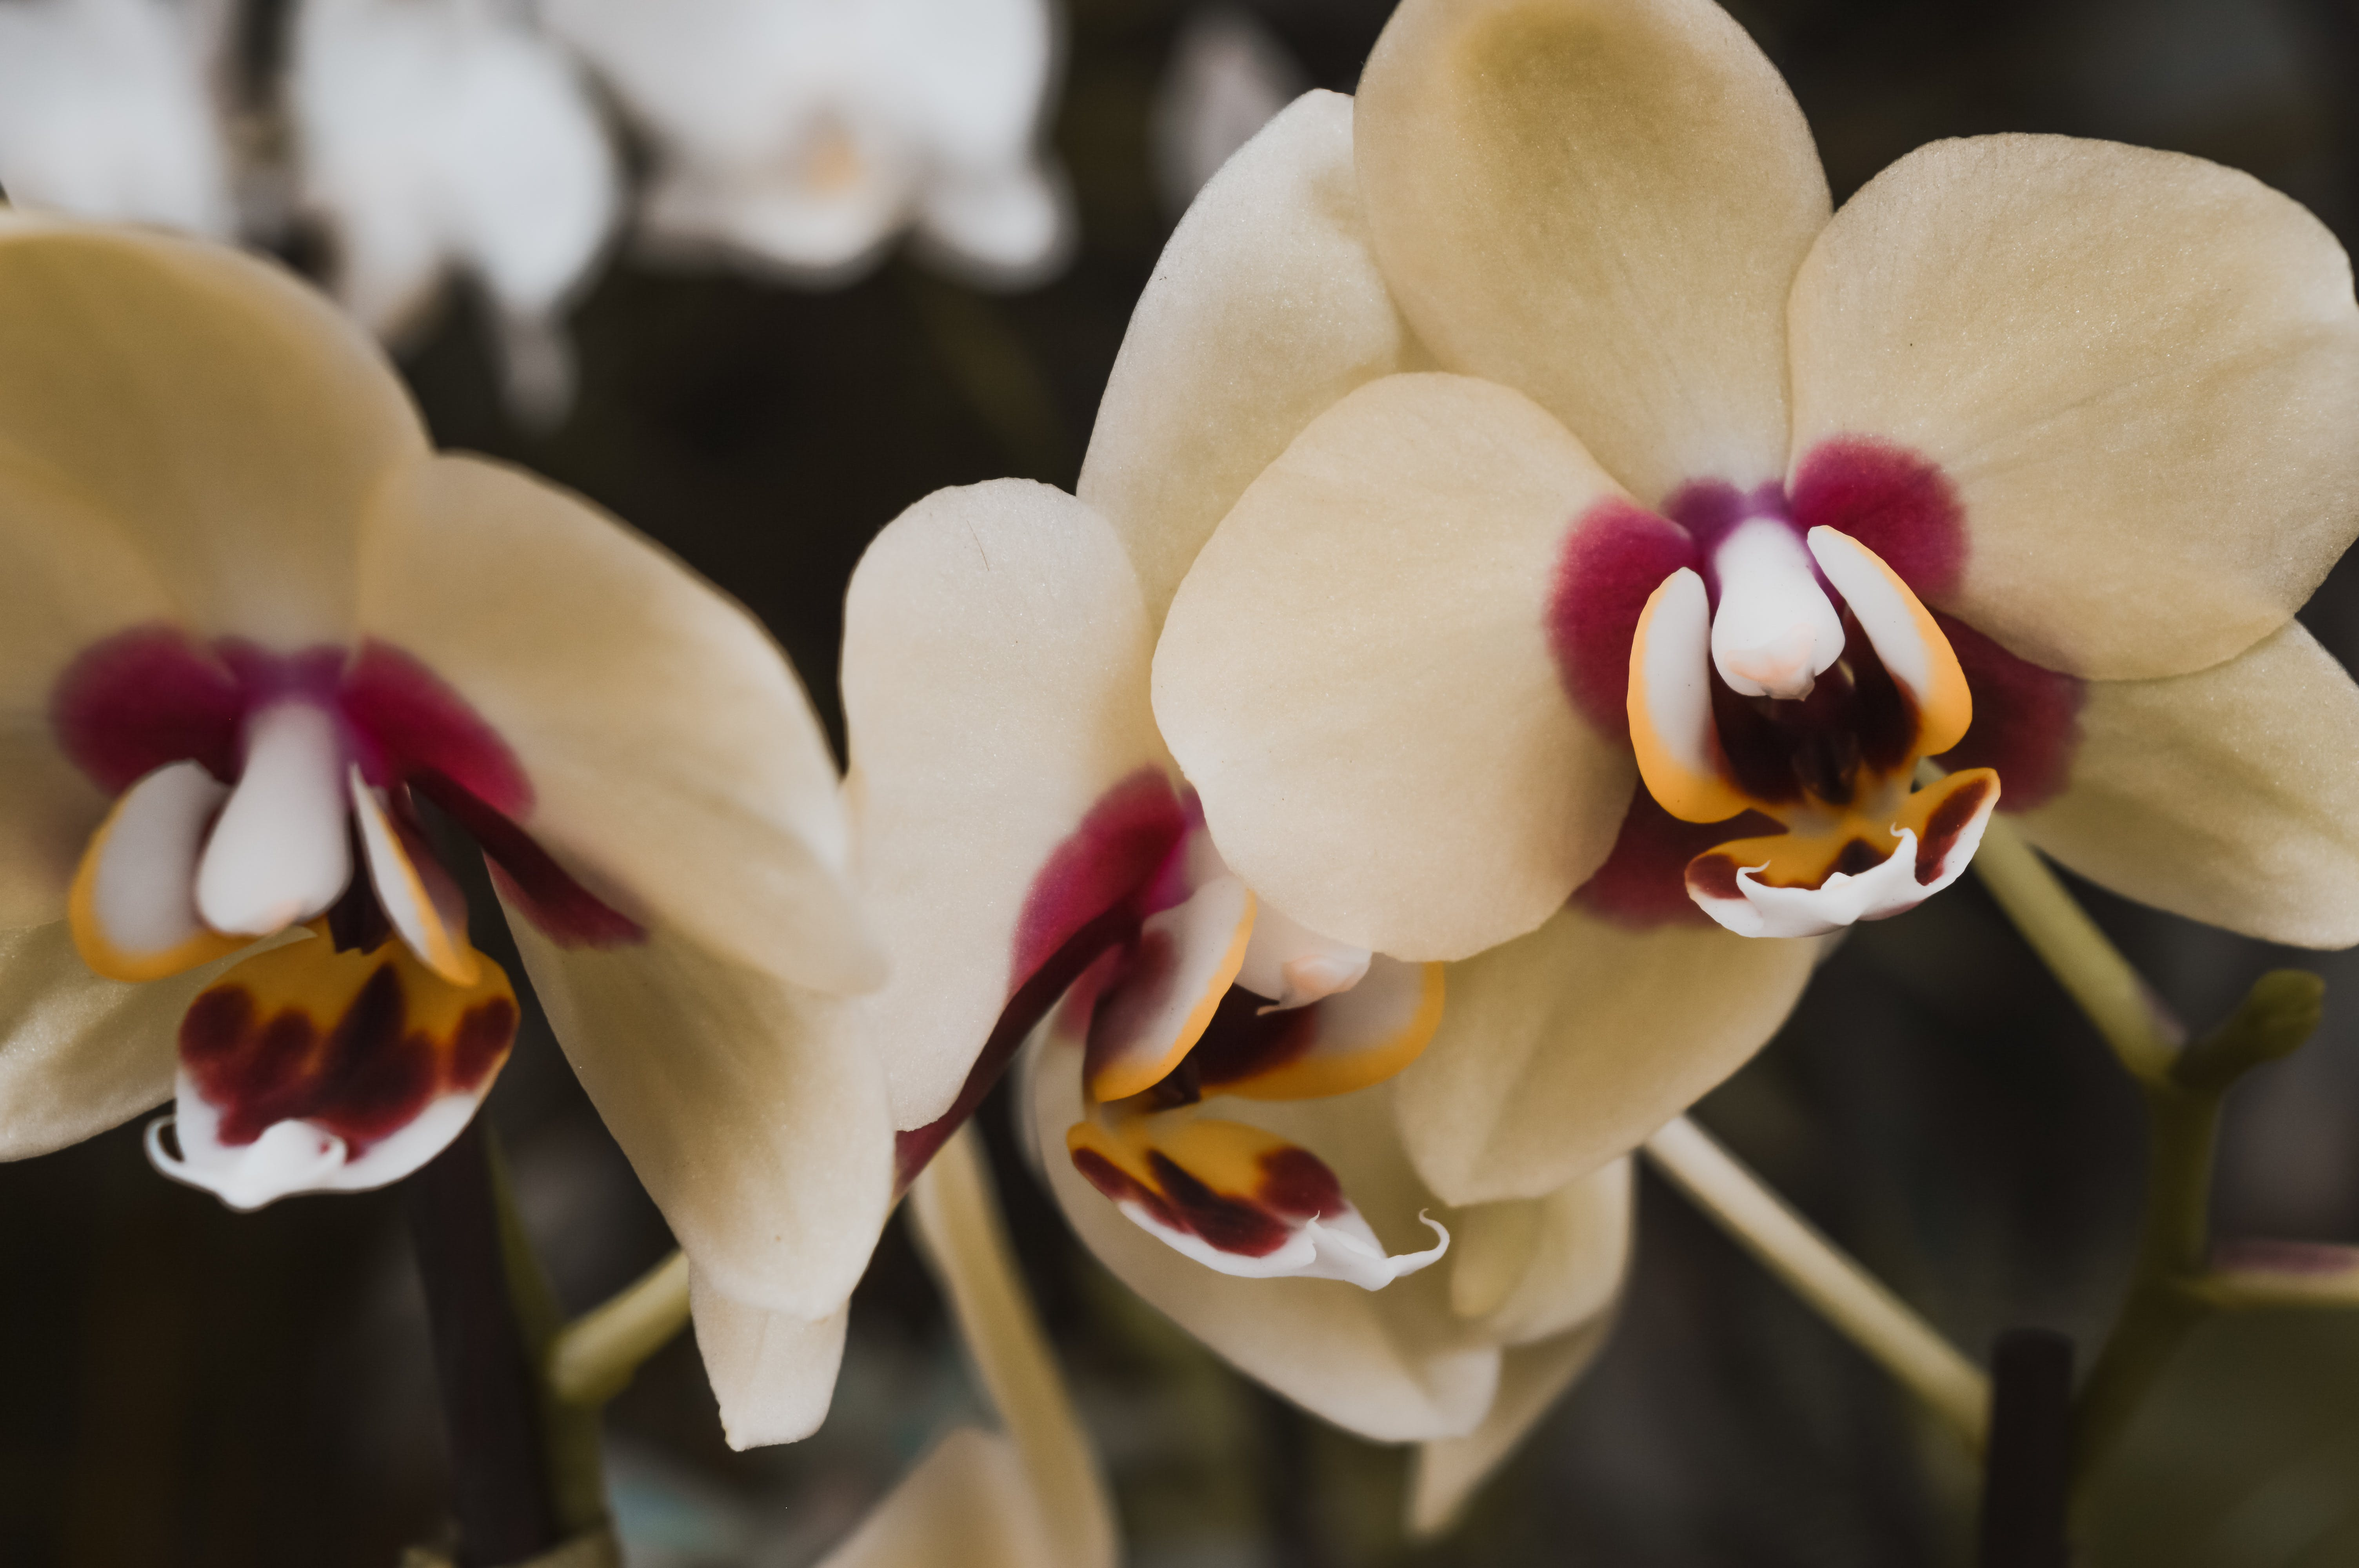 Free stock photo of beautiful flowers, flowers, orchids, plants